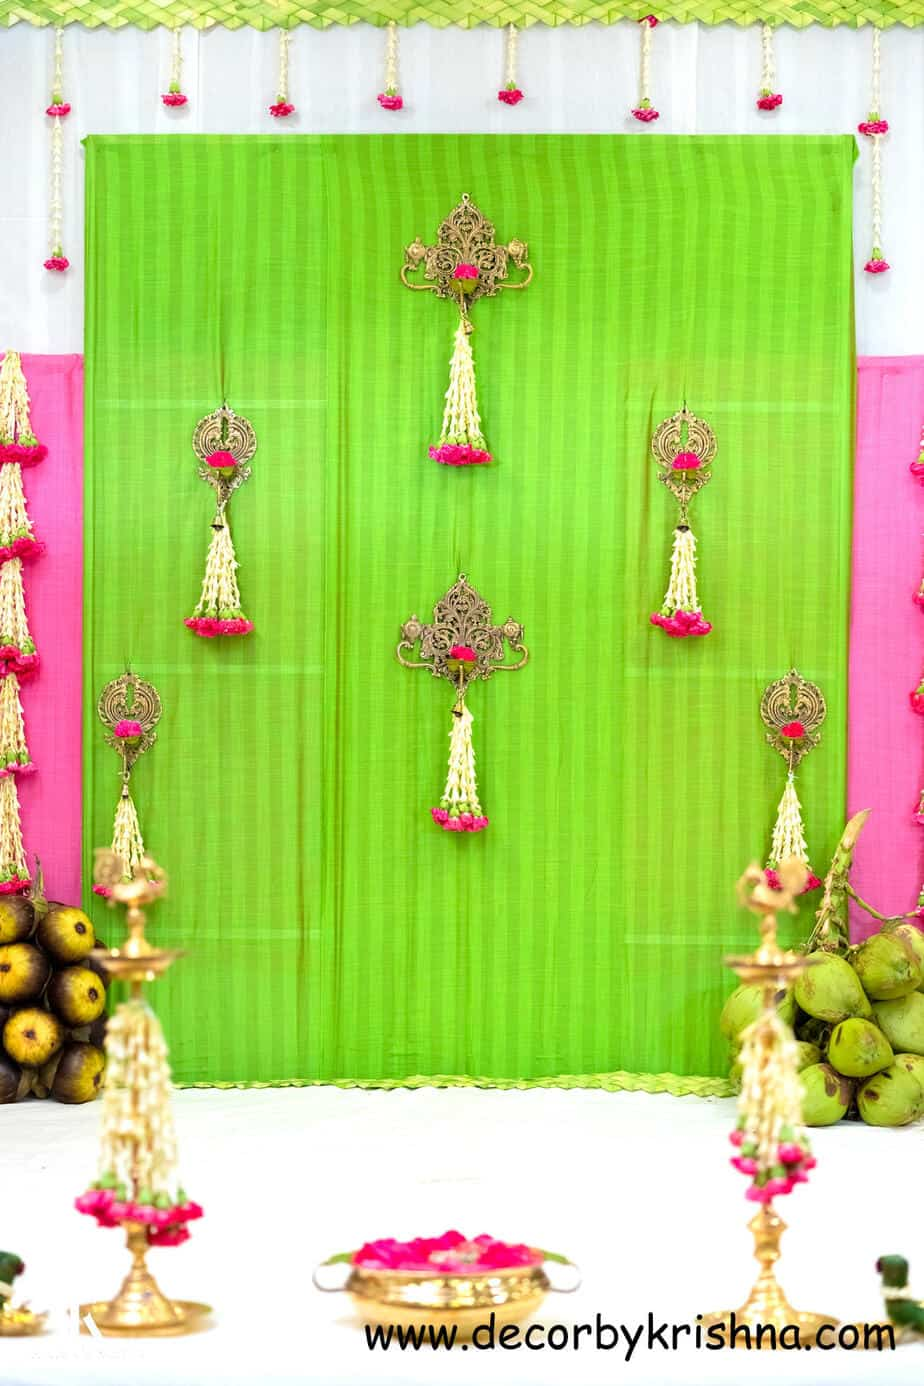 Decor By Krishna , Eco,Friendly Wedding and Party Decorators